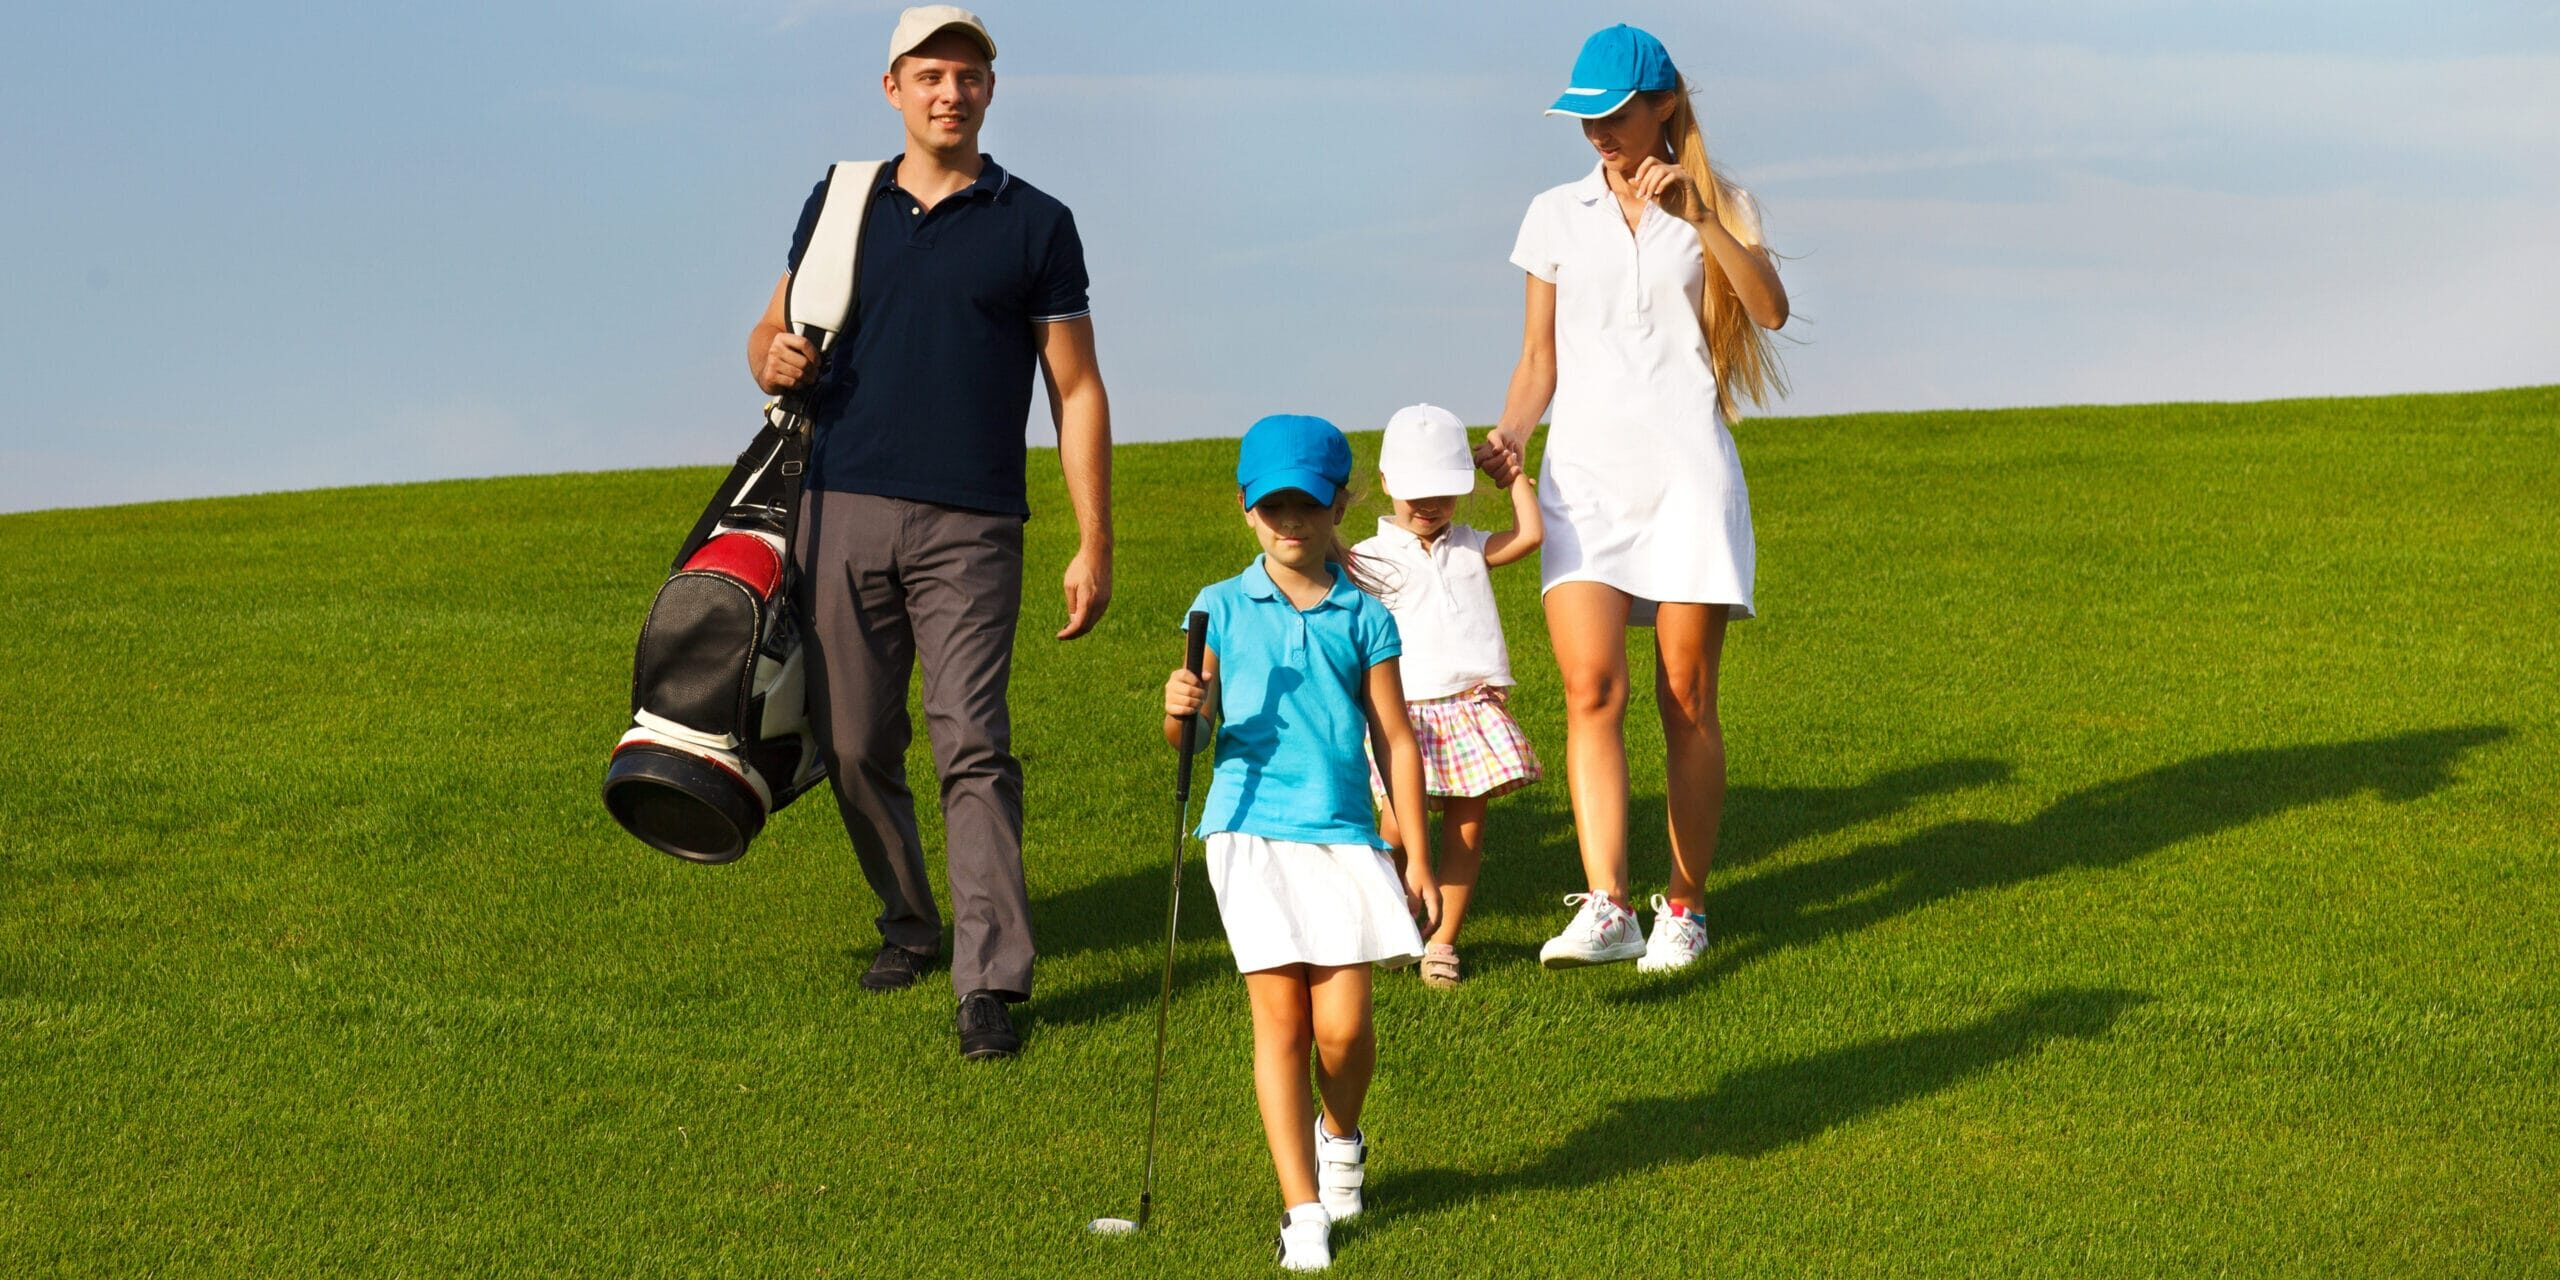 family golf lessons, coquitlam, burnaby, vancouver, BC Golf, Golf, Golf lessons, golf port coquitlam, golf pit meadows, golf port moody,